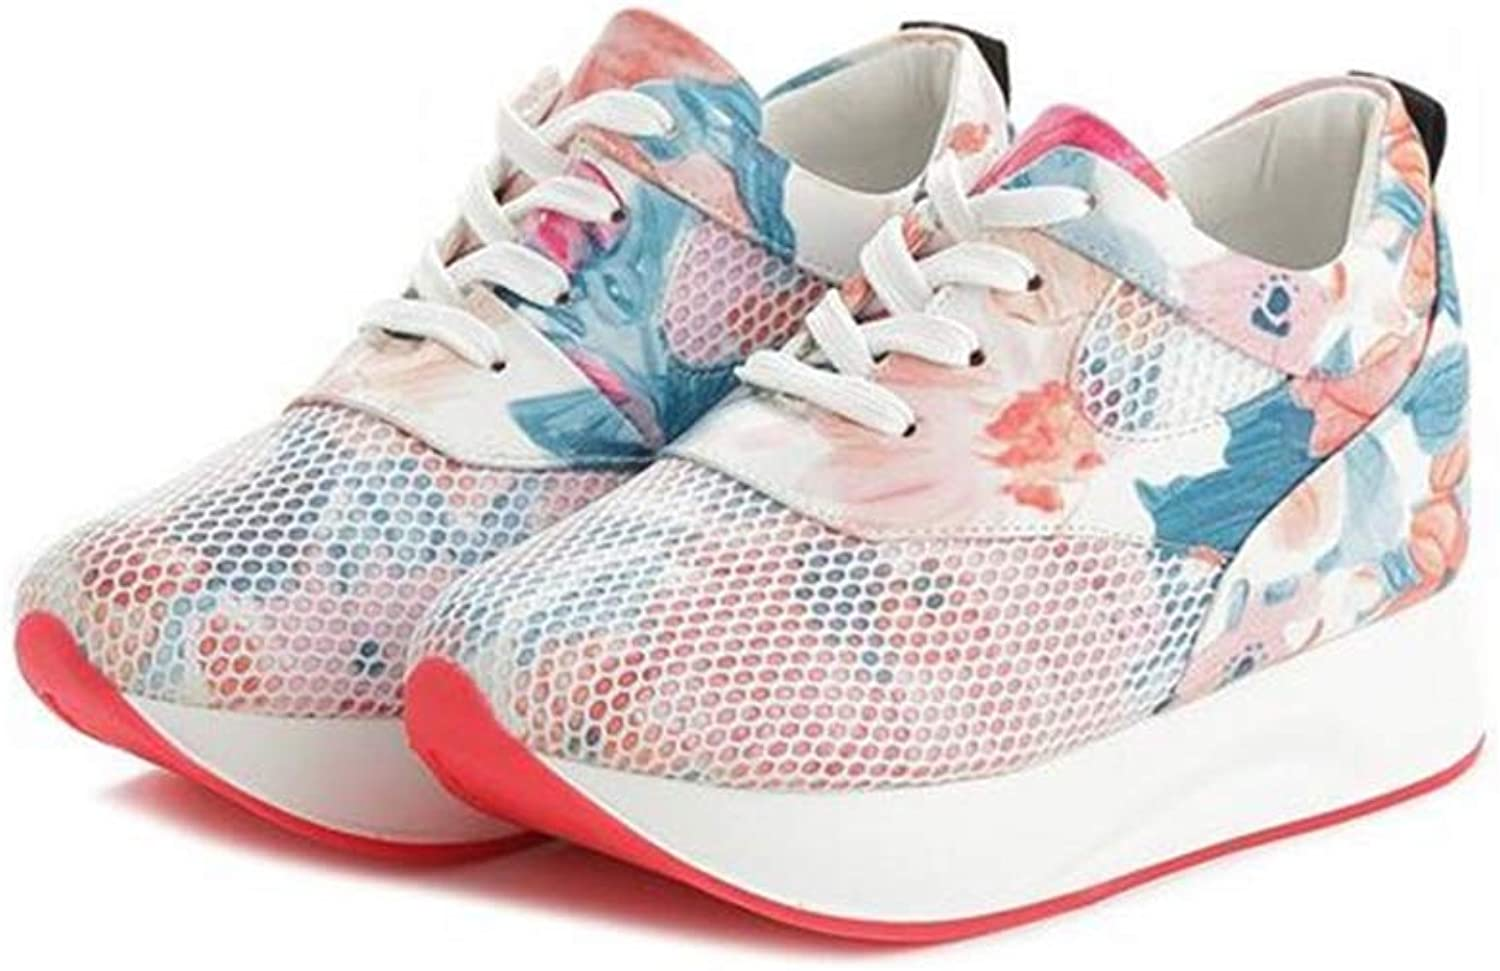 Gcanwea Fashion Women Height Increasing Waterproof Wedges Sneakers Pu Leather Printing Platform Casual shoes No Grinding Feet with Dress Pink 4.5 M US Casual shoes